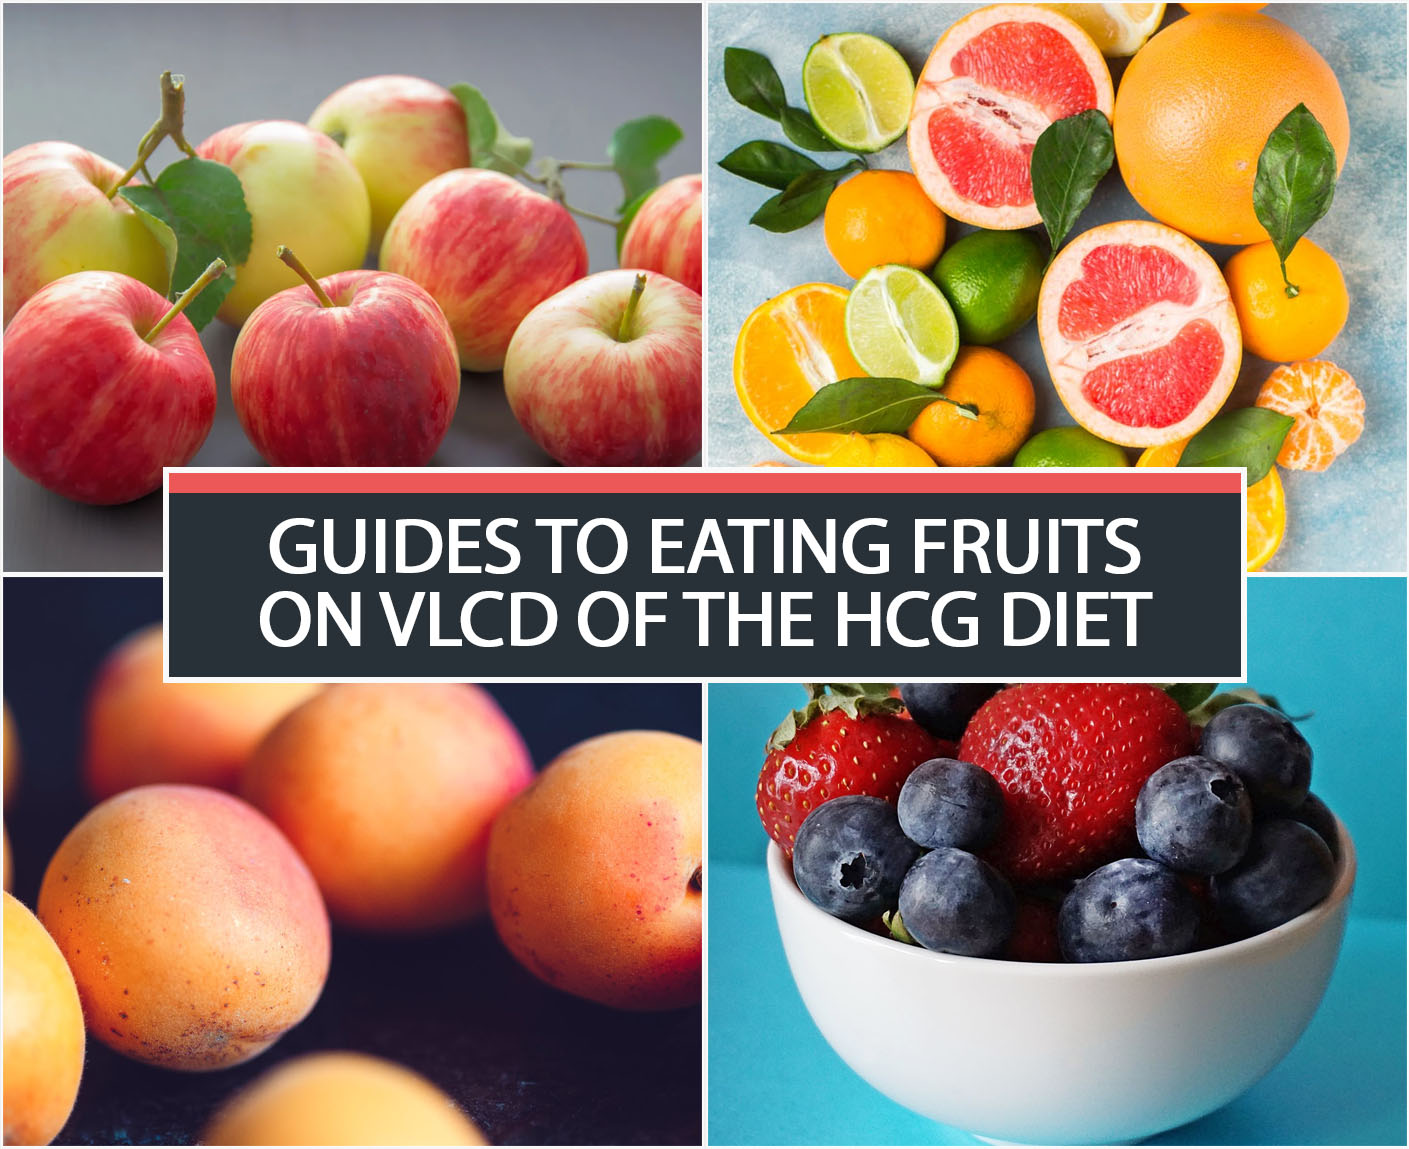 GUIDES TO EATING FRUITS ON VLCD OF THE HCG DIET